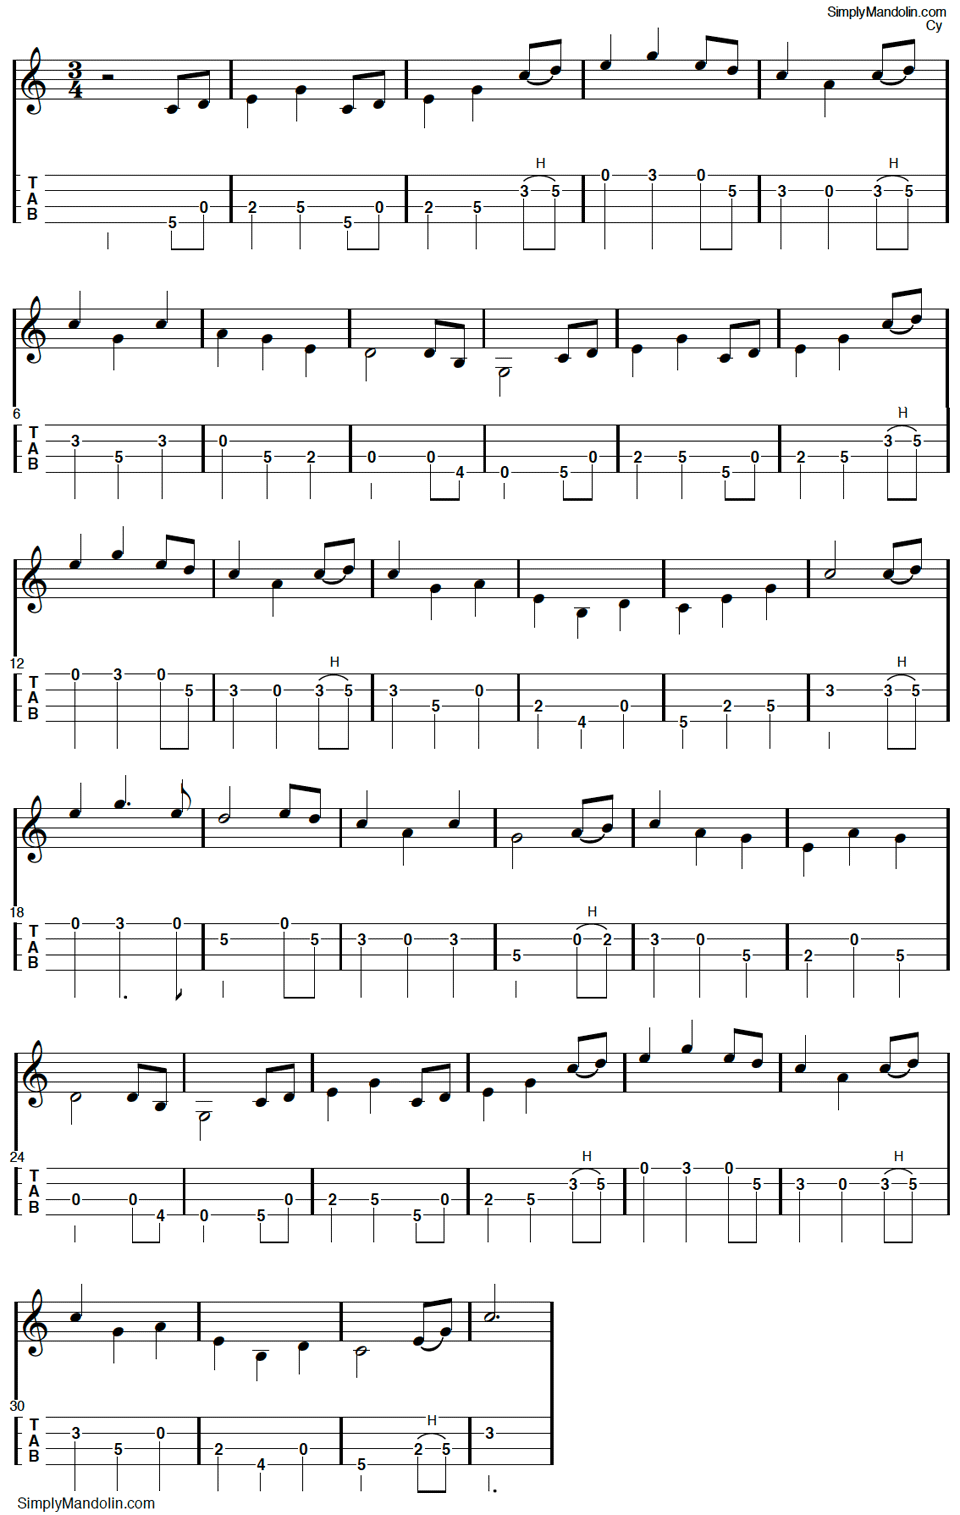 Mandolin tab for th Tennessee Waltz.